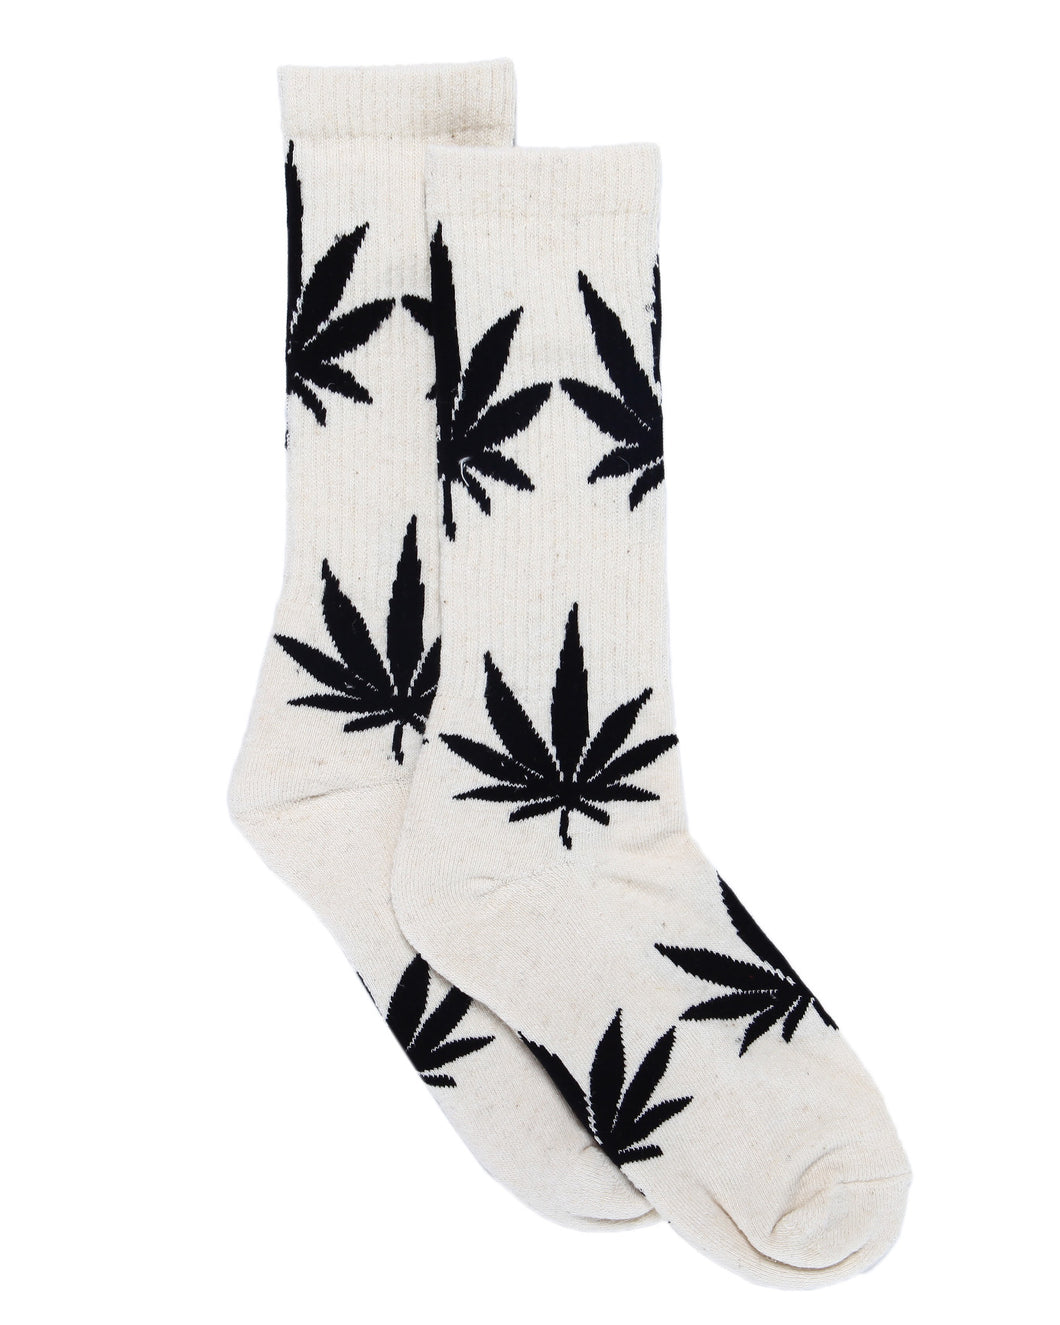 Hemp Leaf Crew Socks - White